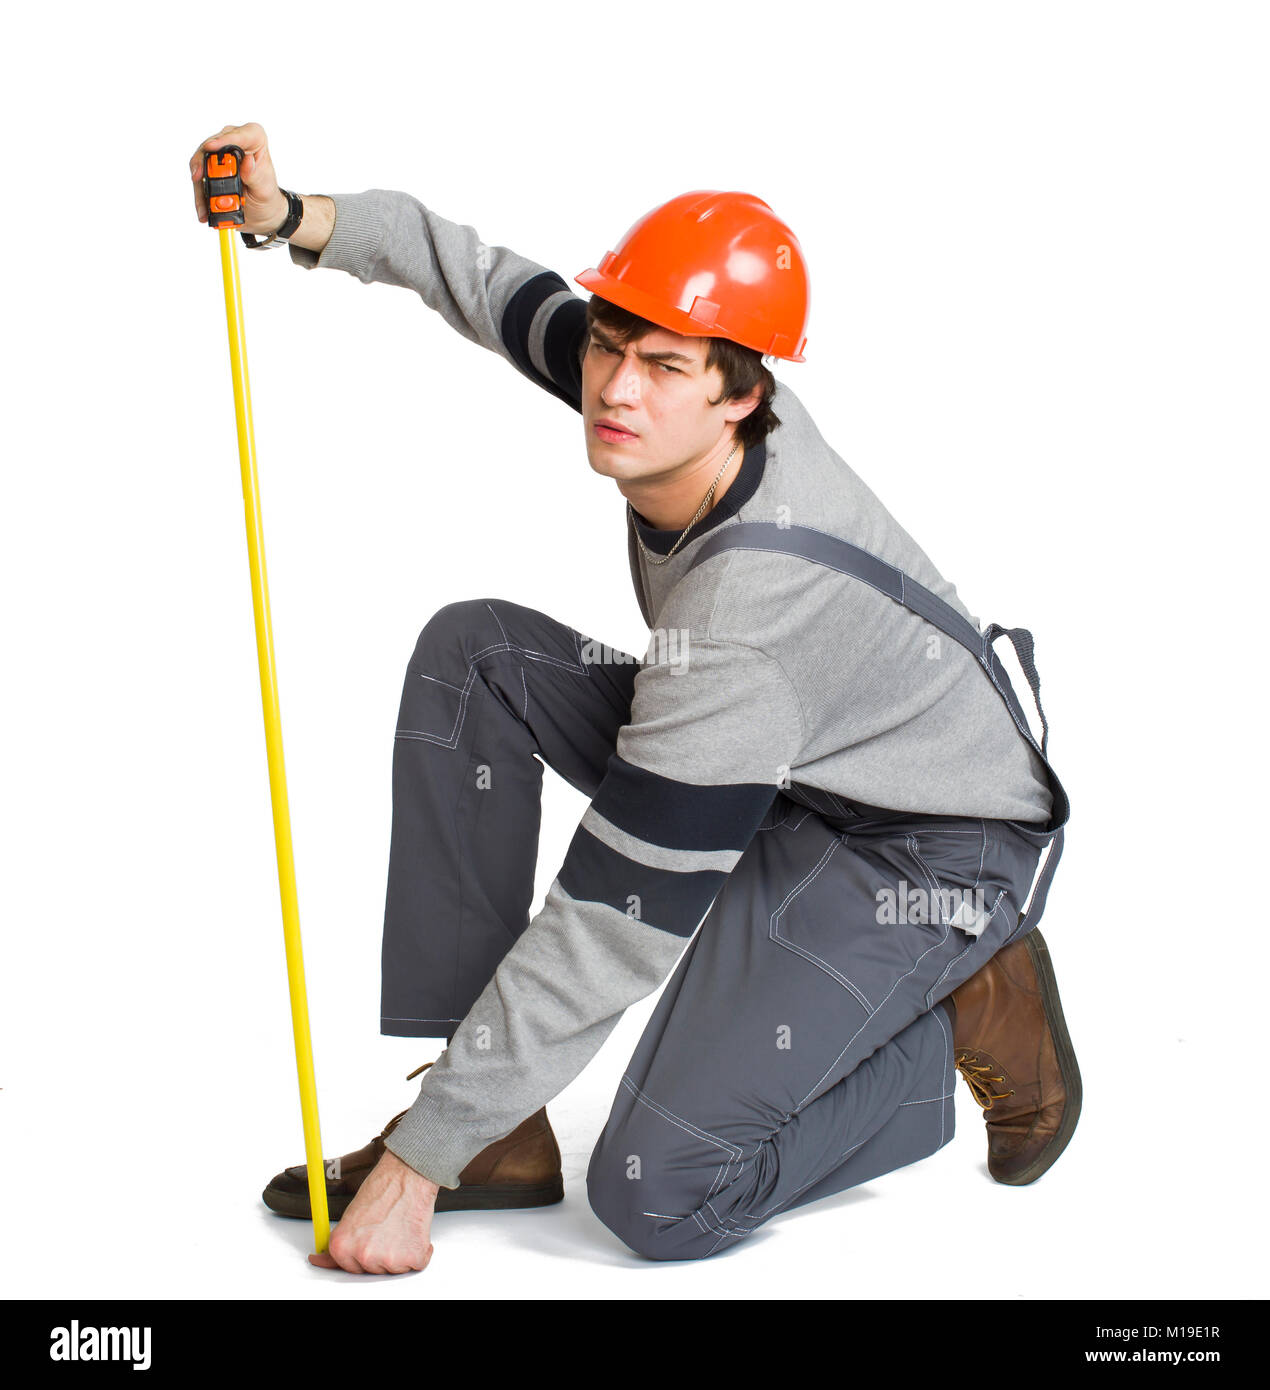 A young man in working grey clothes and orange hard helmet measuring the metric area in the room. - Stock Image